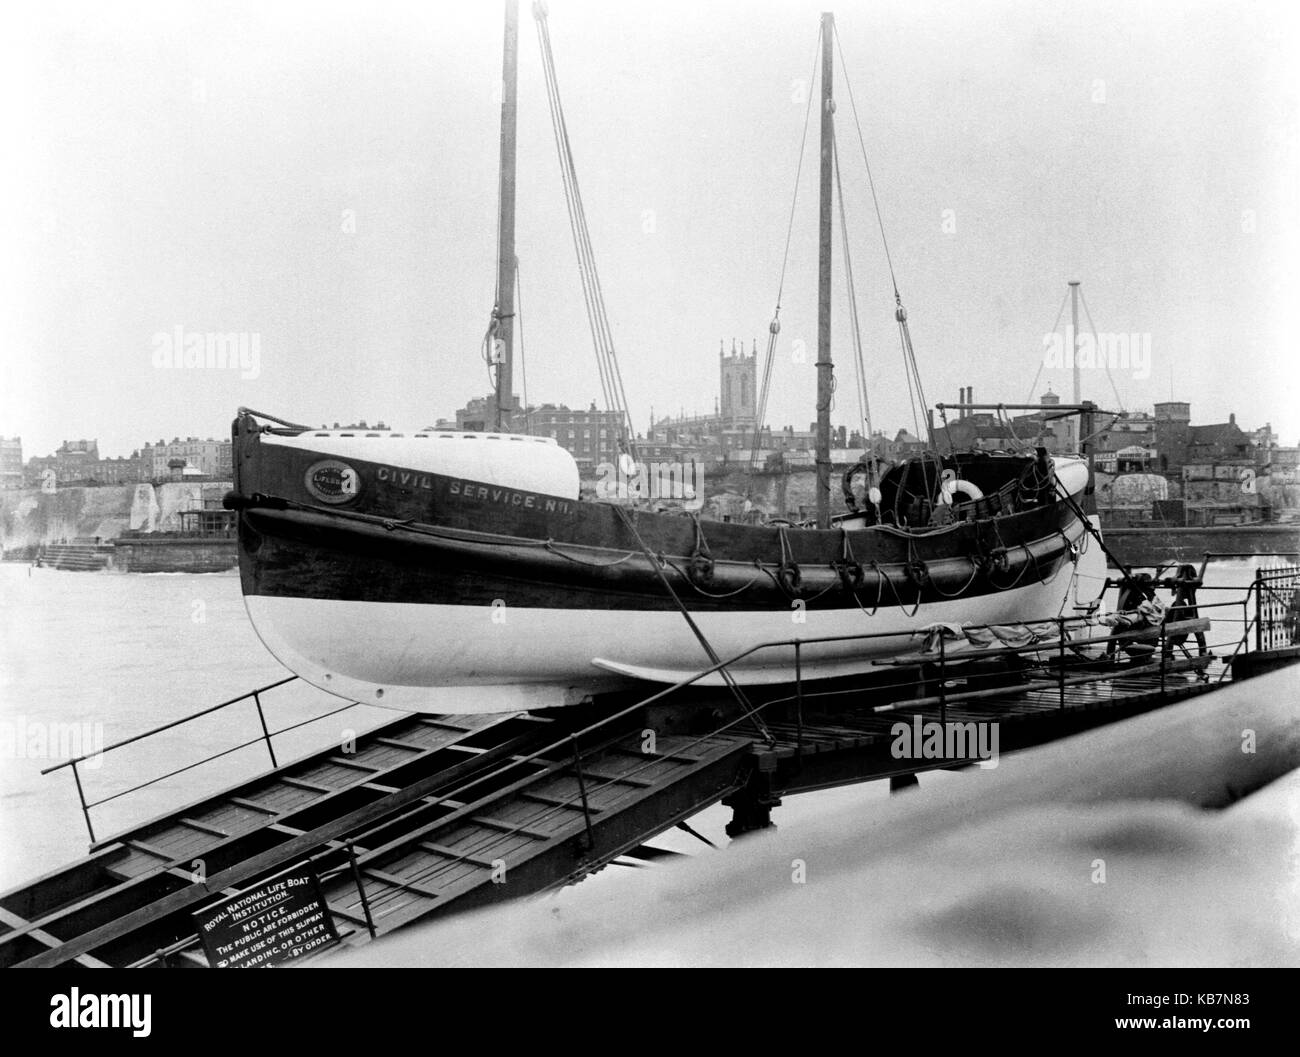 AJAXNETPHOTO. 1903. MARGATE, ENGLAND. - READY TO LAUNCH - CIVIL SERVICE NR 1 LIFEBOAT (ON 415) ON THE STATION 2 - Stock Image